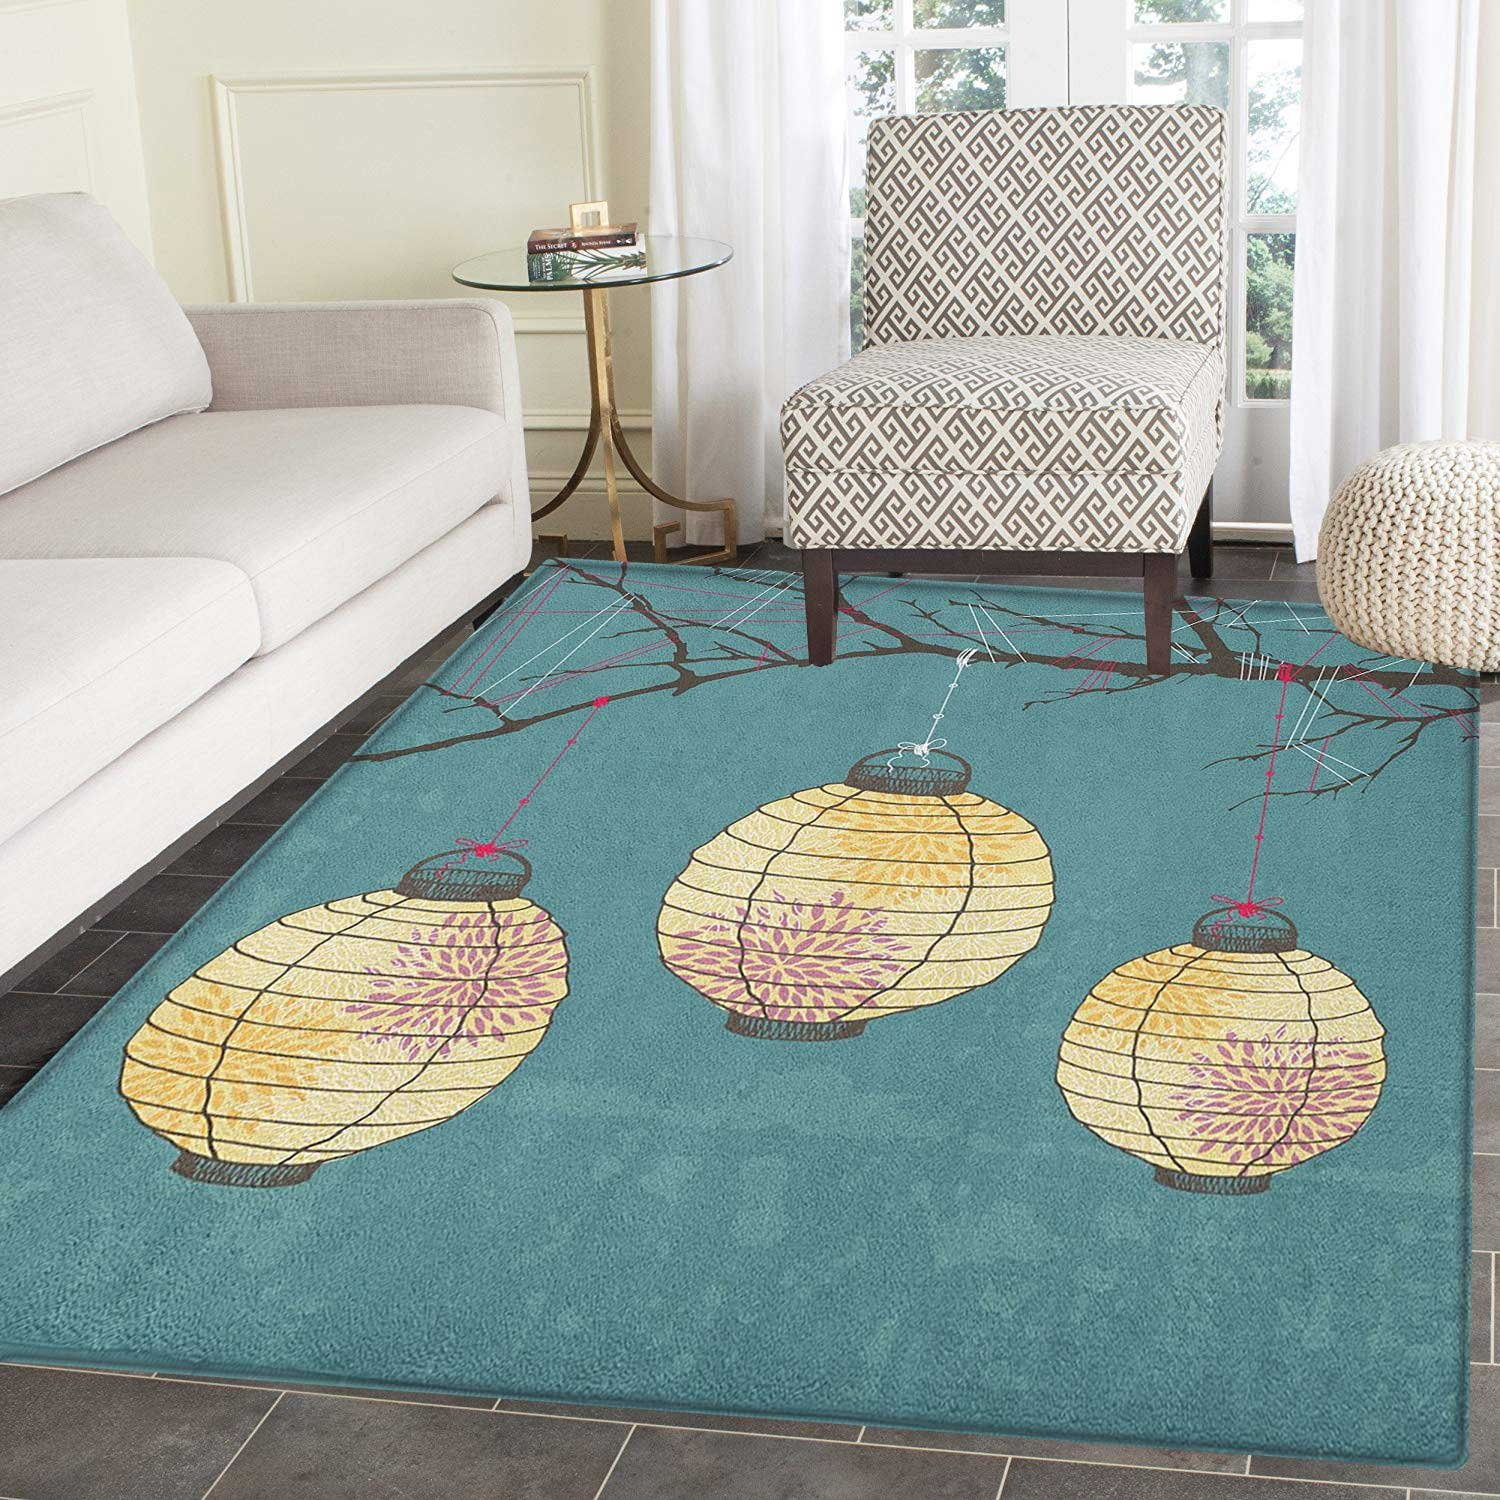 Lantern Area Rug Carpet Three Paper Lanterns Hanging on Branches Lighting Fixture Source Lamp Boho Living Dining Room Bedroom Hallway Office Carpet 4'x5' Teal Pale Yellow by smallbeefly